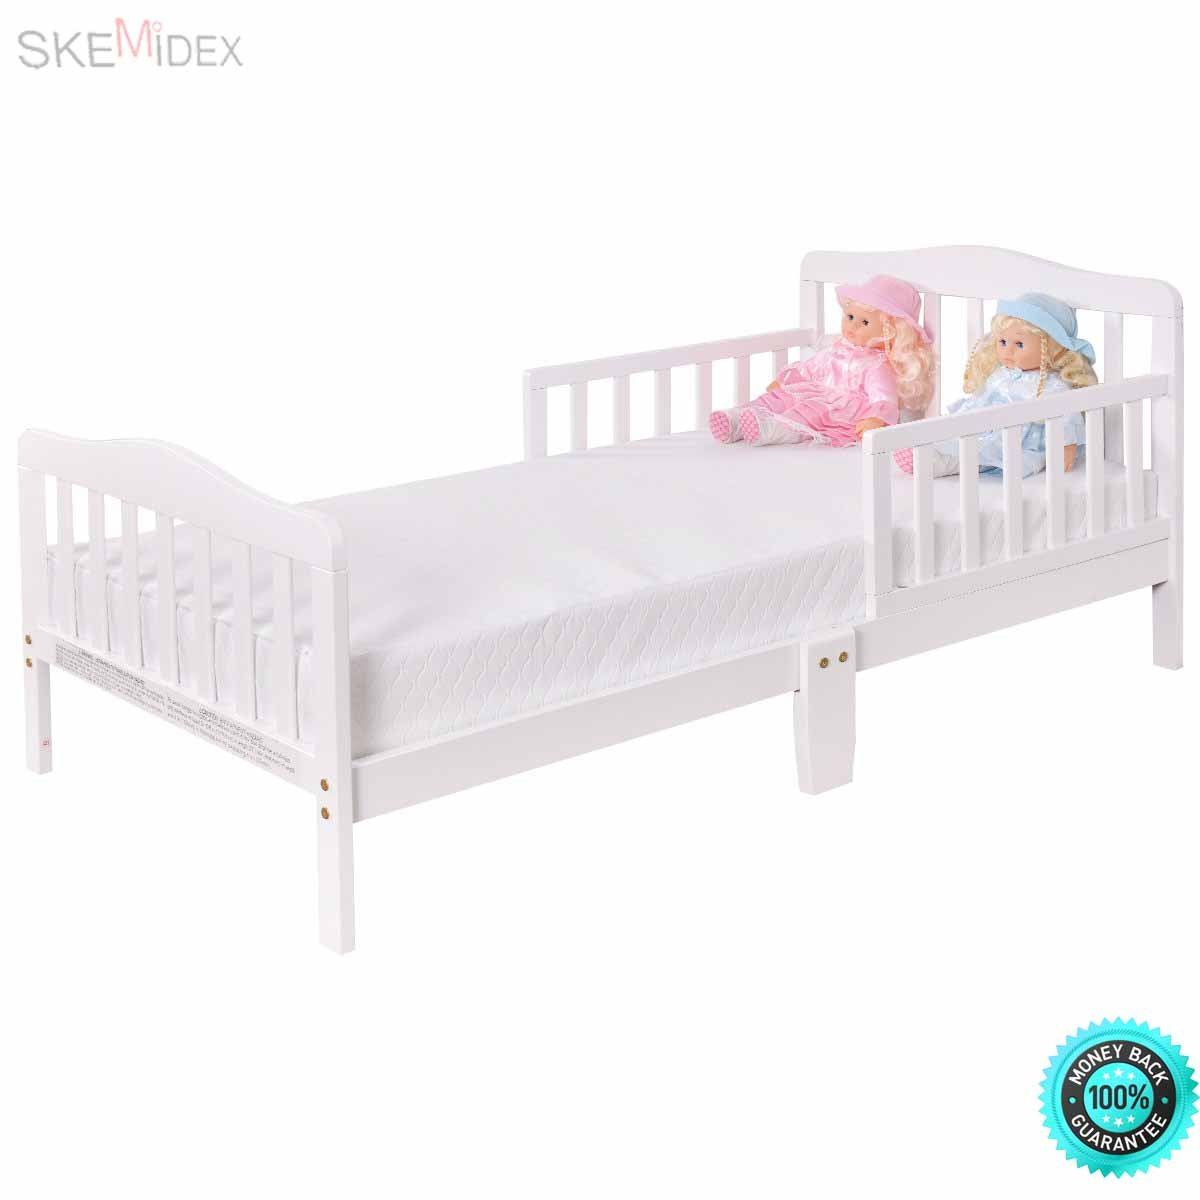 Skemidex baby toddler bed kids children wood bedroom furniture w safety rails white introduce your child to his first real bed with this toddler bed that